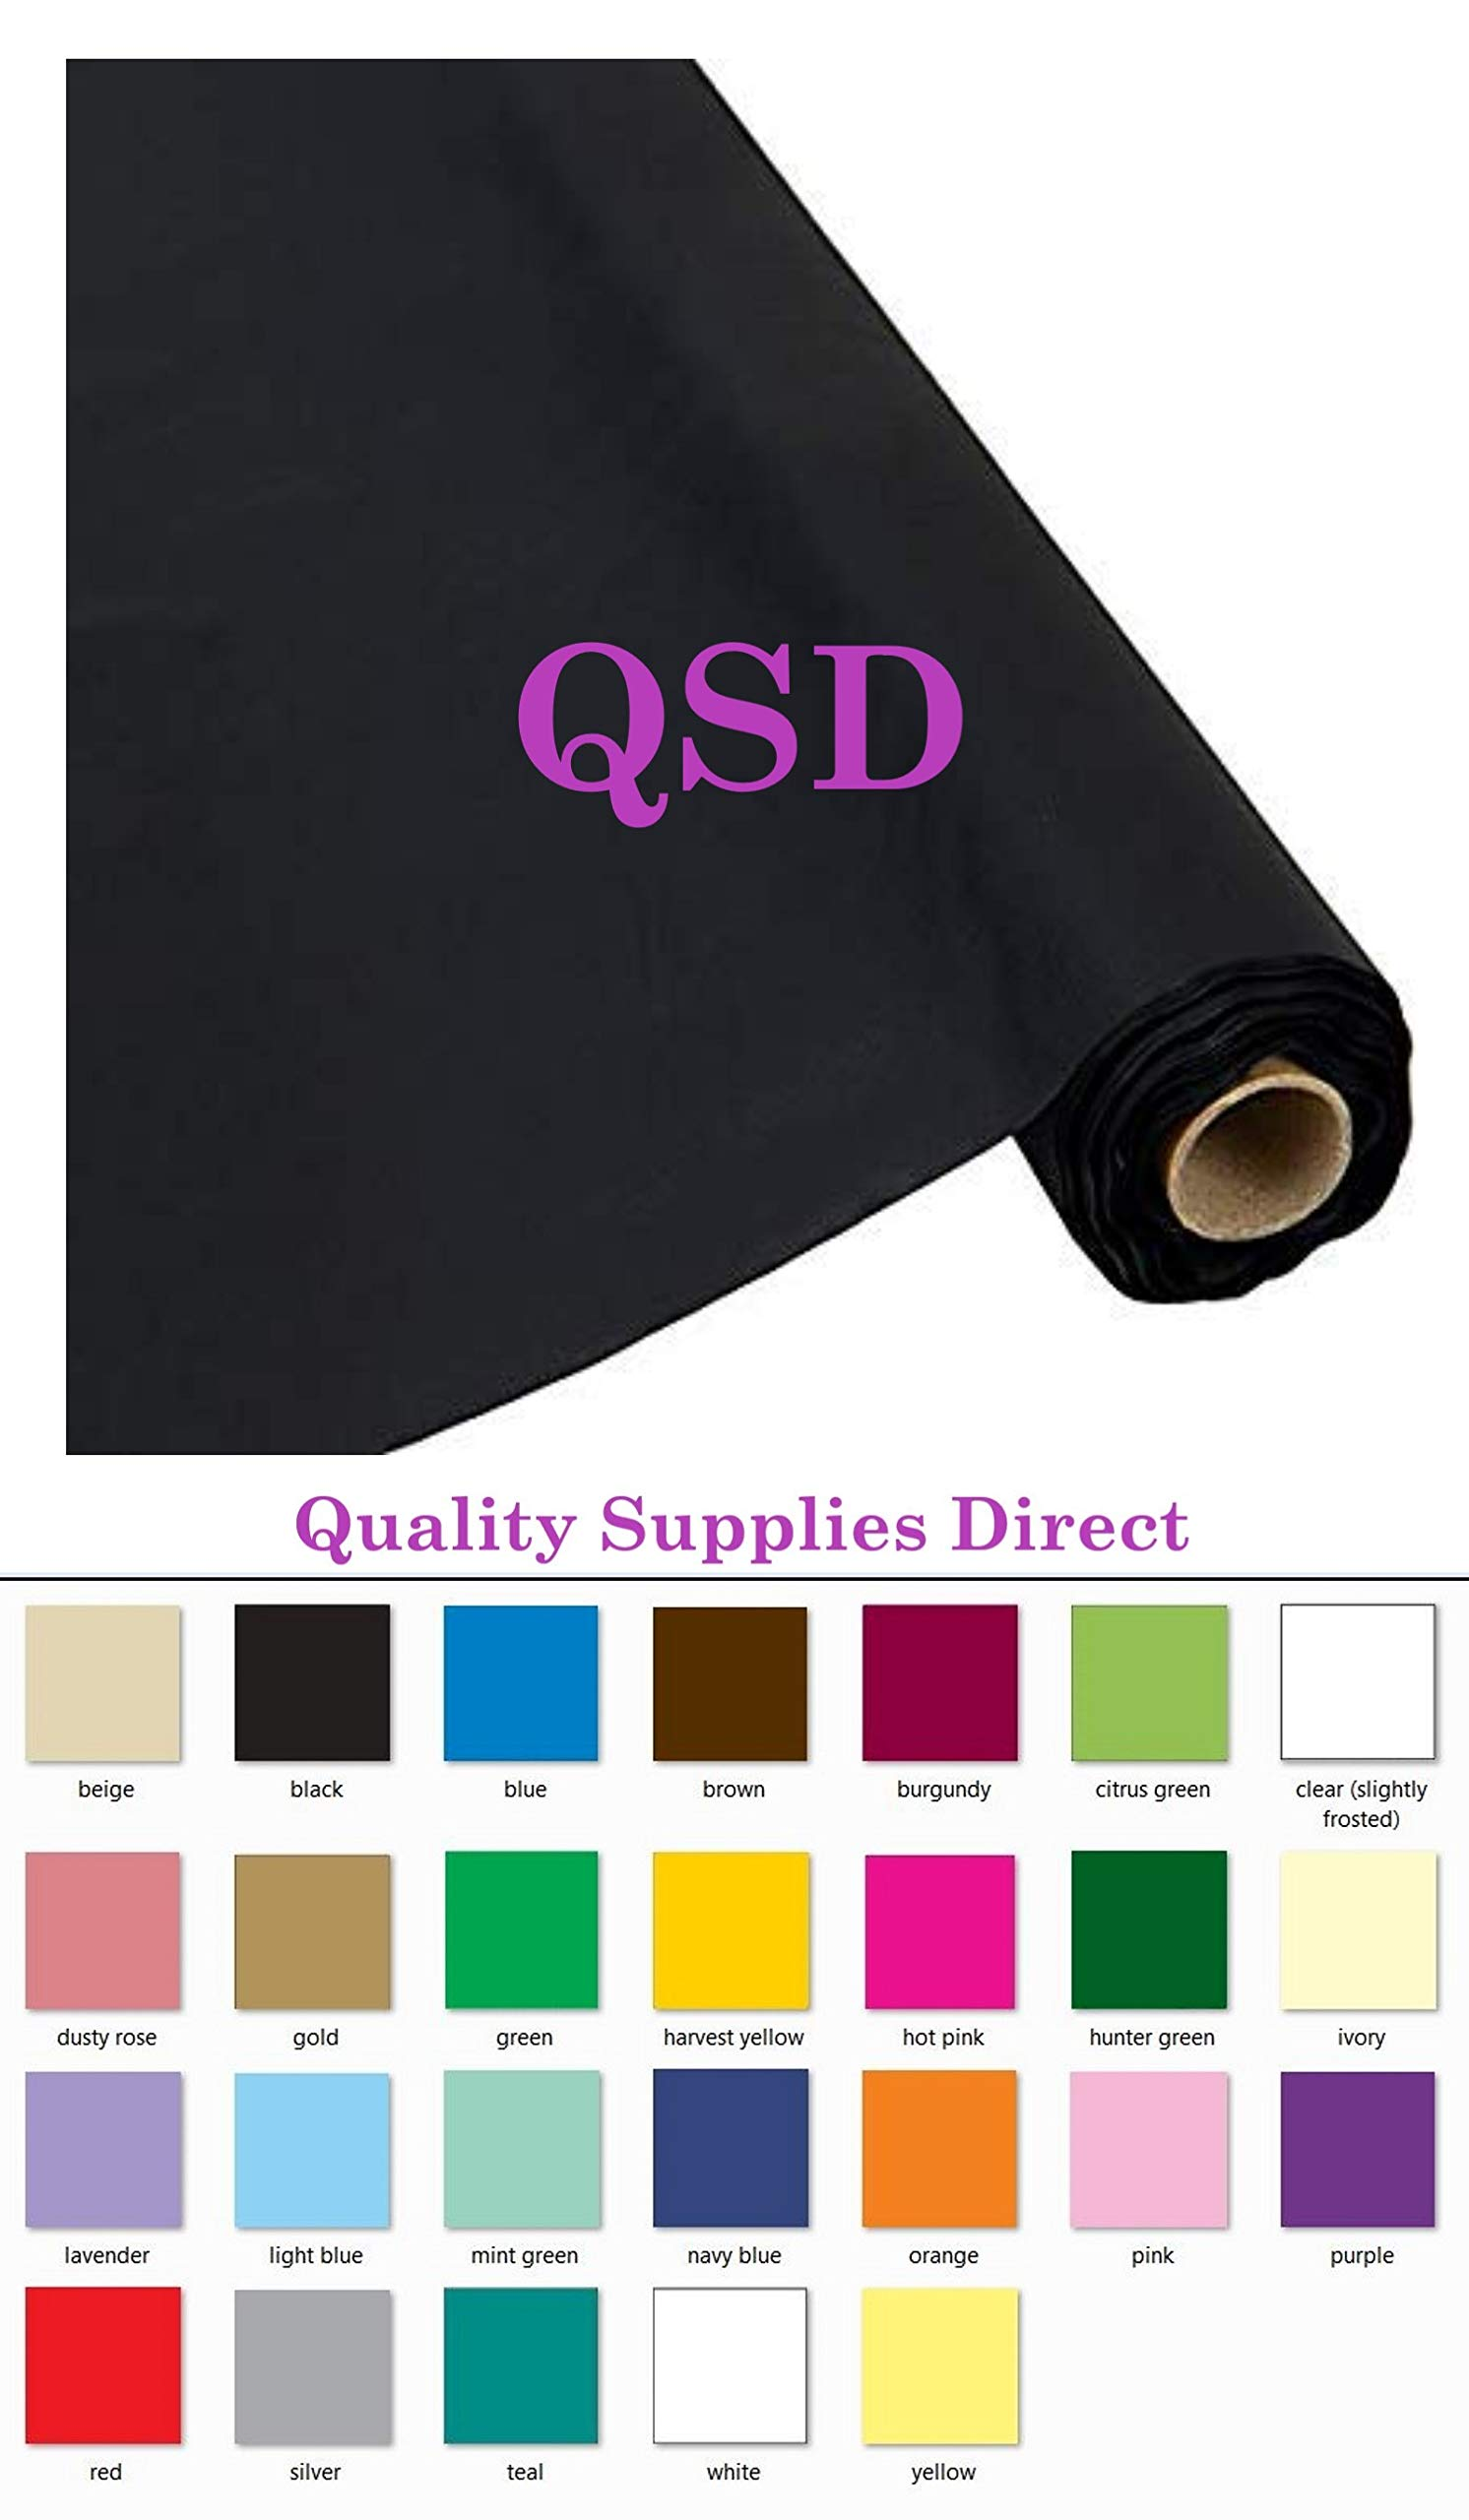 QSD Plastic Party Banquet Table Cover Roll - 300 ft. x 40 in. - 8ft Table Covers (Black) (26 Colors Available) by QSD